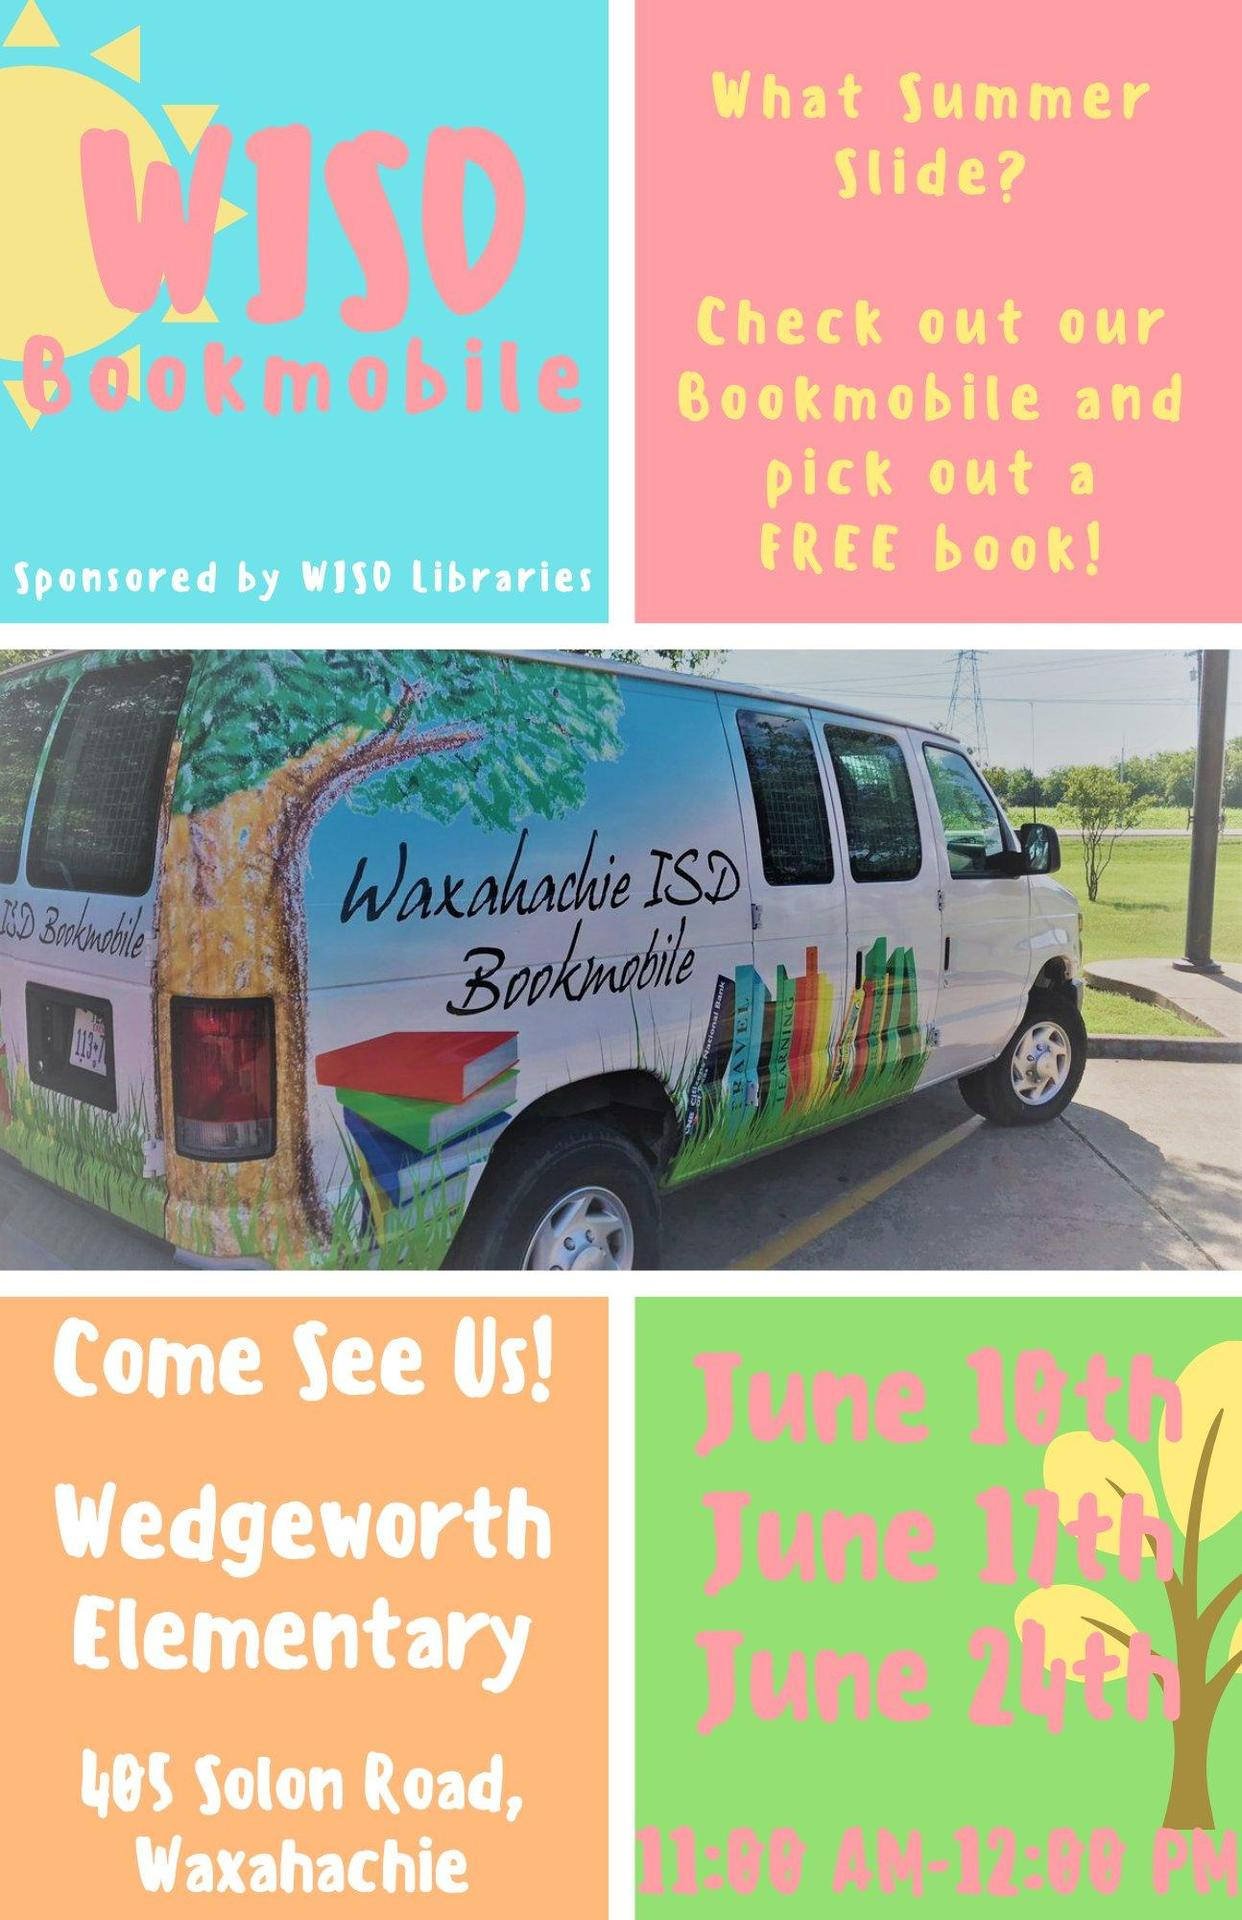 collage with WISD bookmobile which is at Wedgeworth Elementary on June 10, 17 and 24 from 11-12